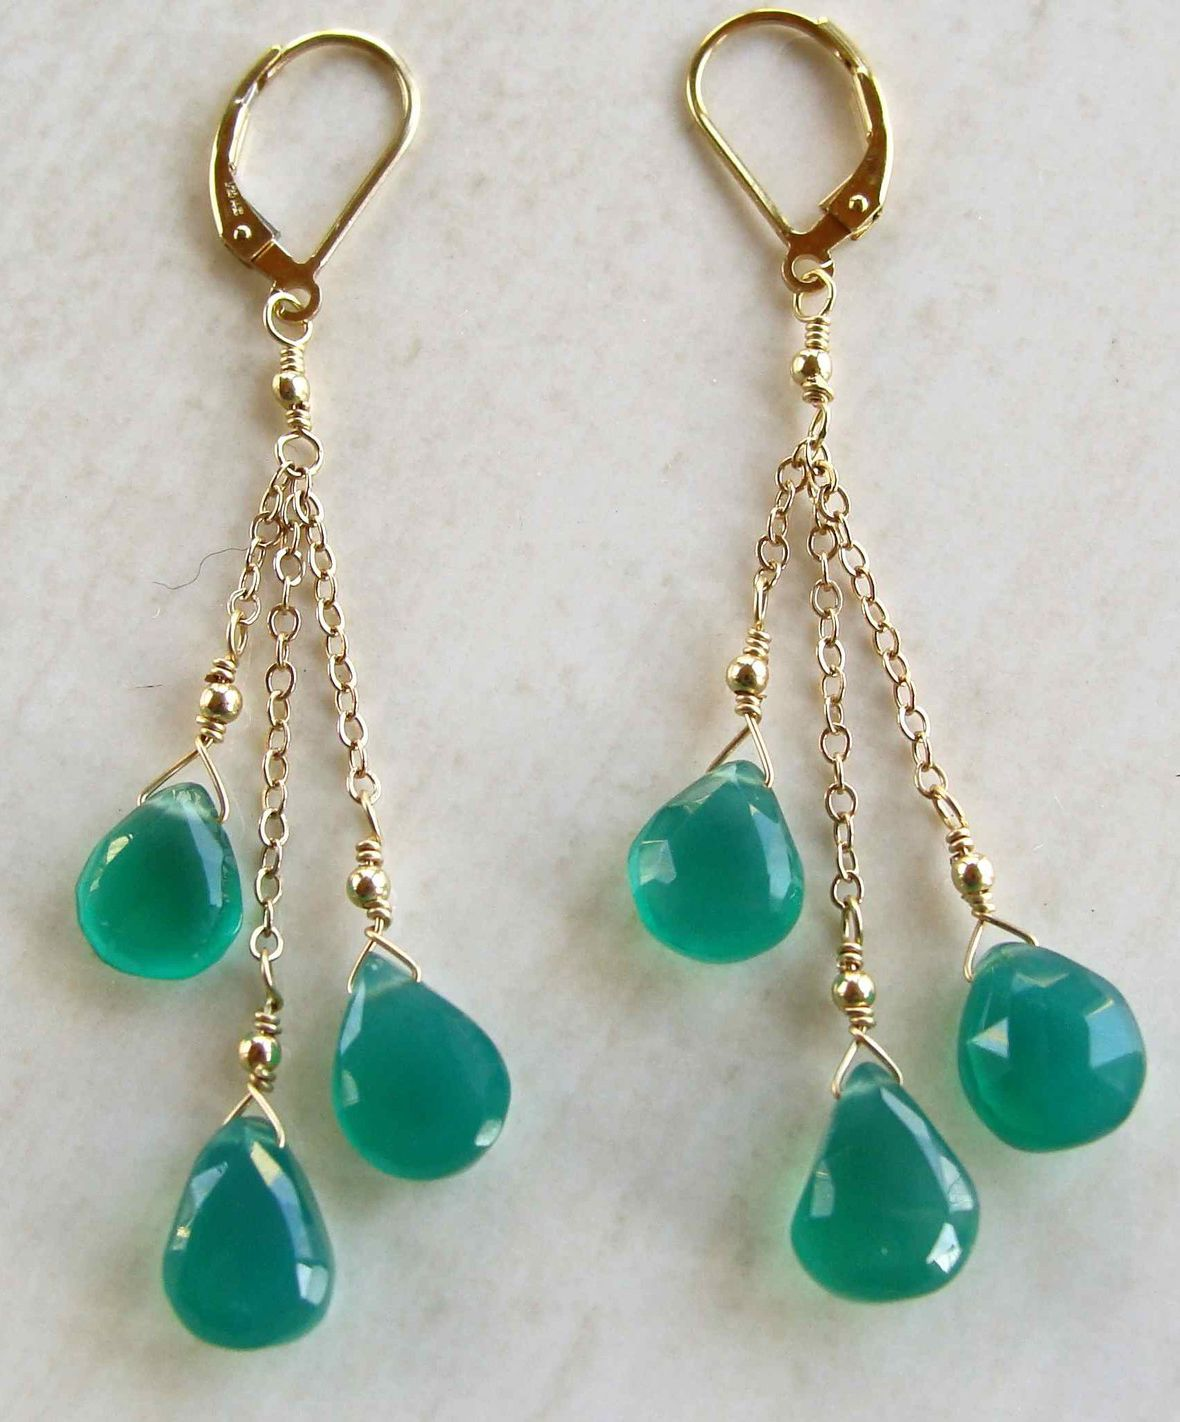 Items similar to Edisto Earrings with Green Onyx Handmade Gold Filled Spring Fashion on Etsy